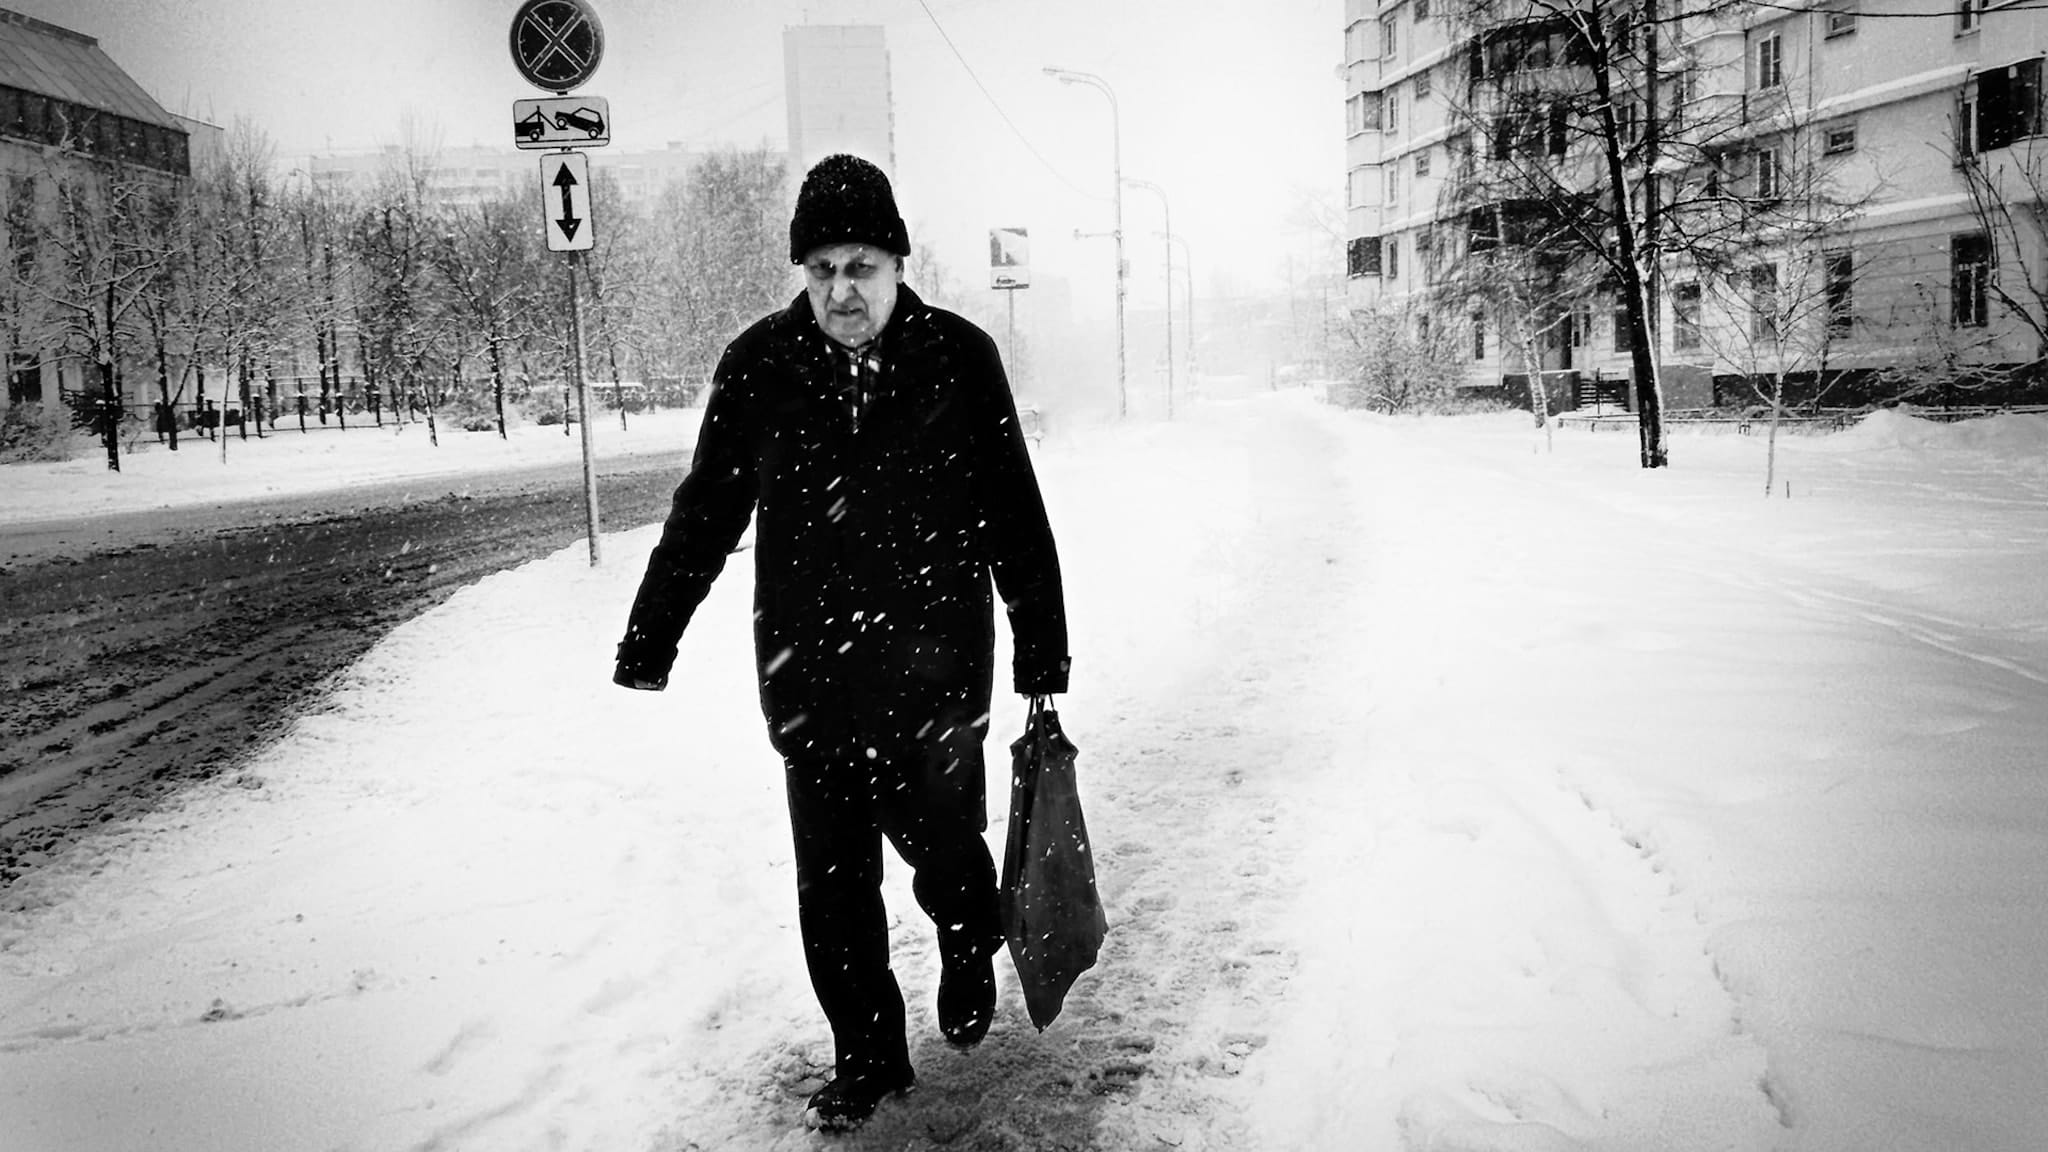 """Snowy day"" Street Photograph by Alexander Tarasenkov"